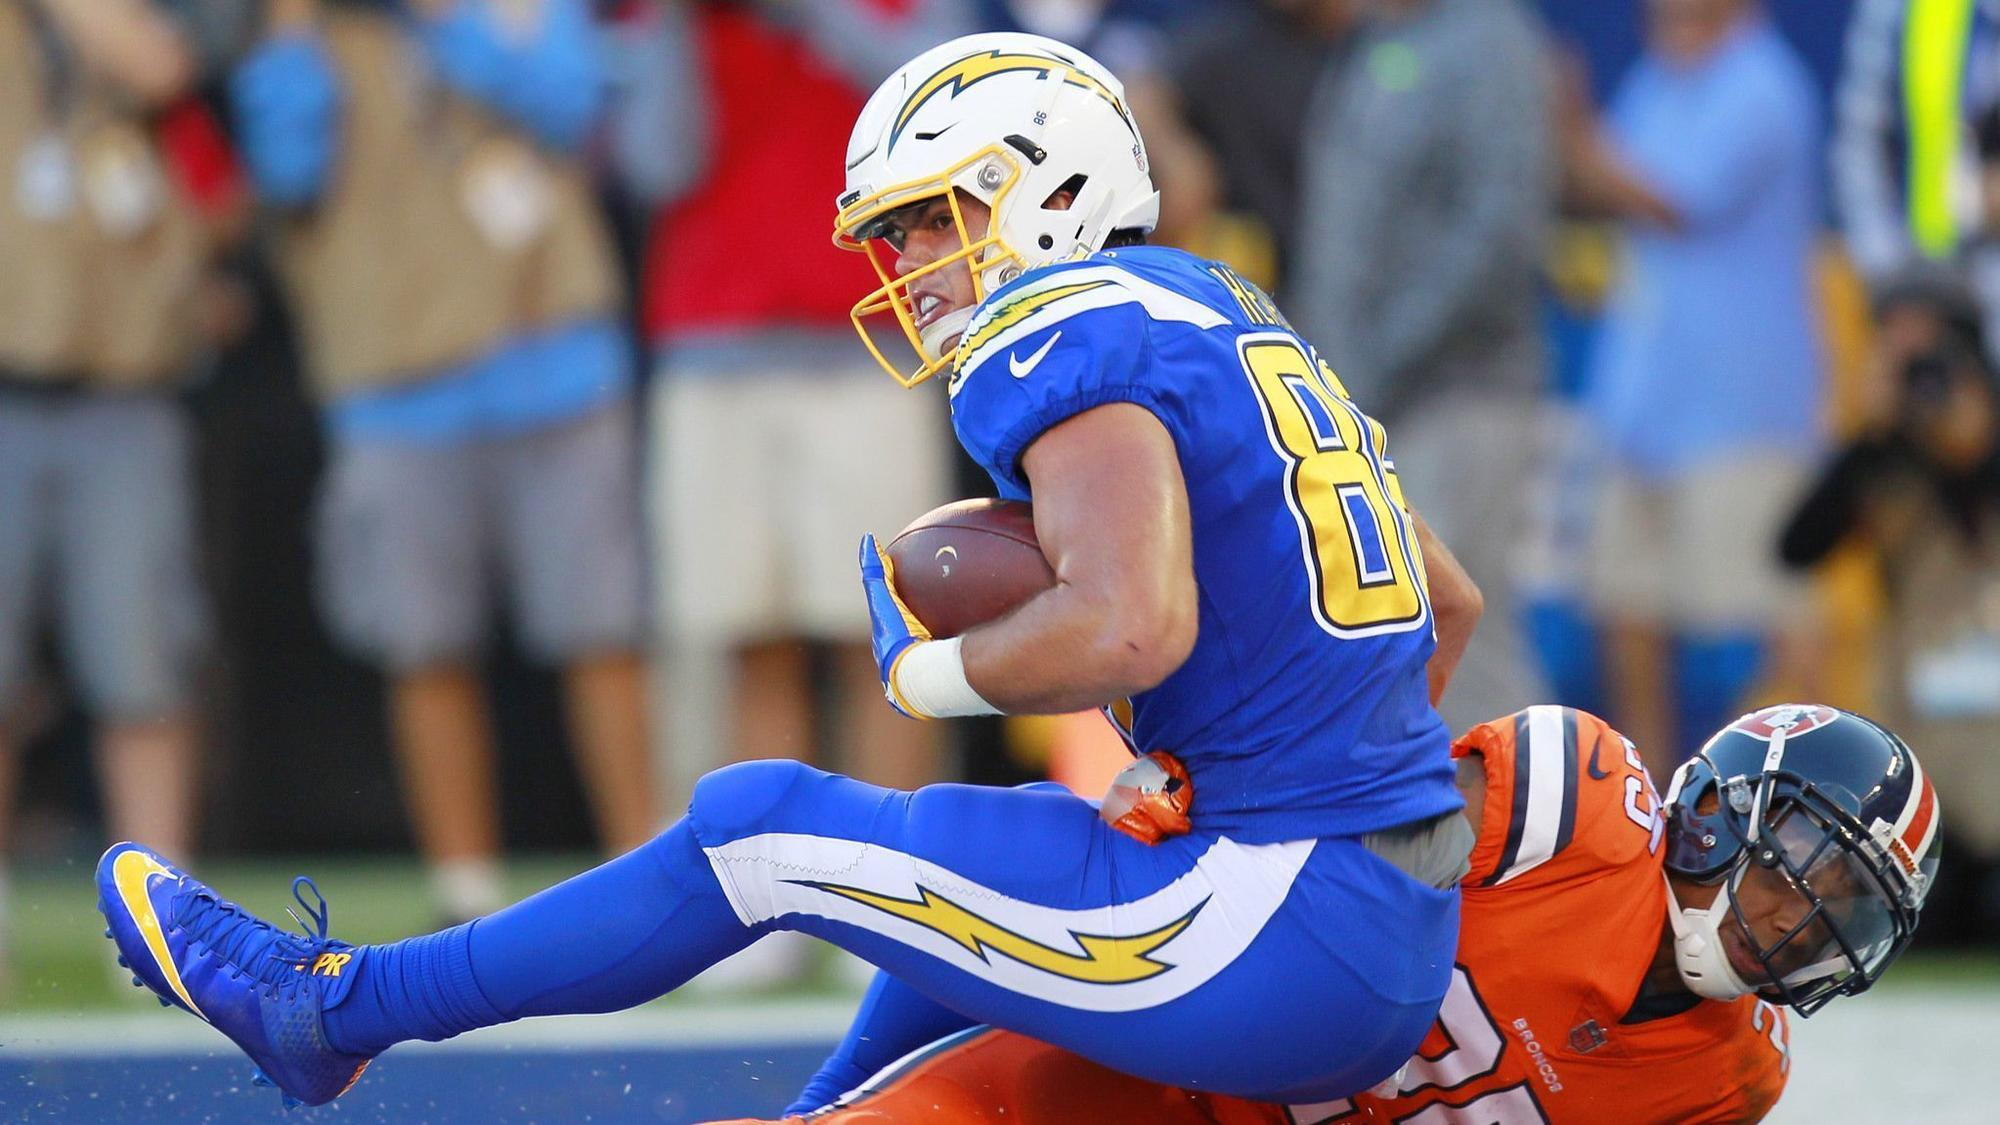 Sd-sp-chargers-hunter-henry-injury-tight-end-antonio-gates-20180523